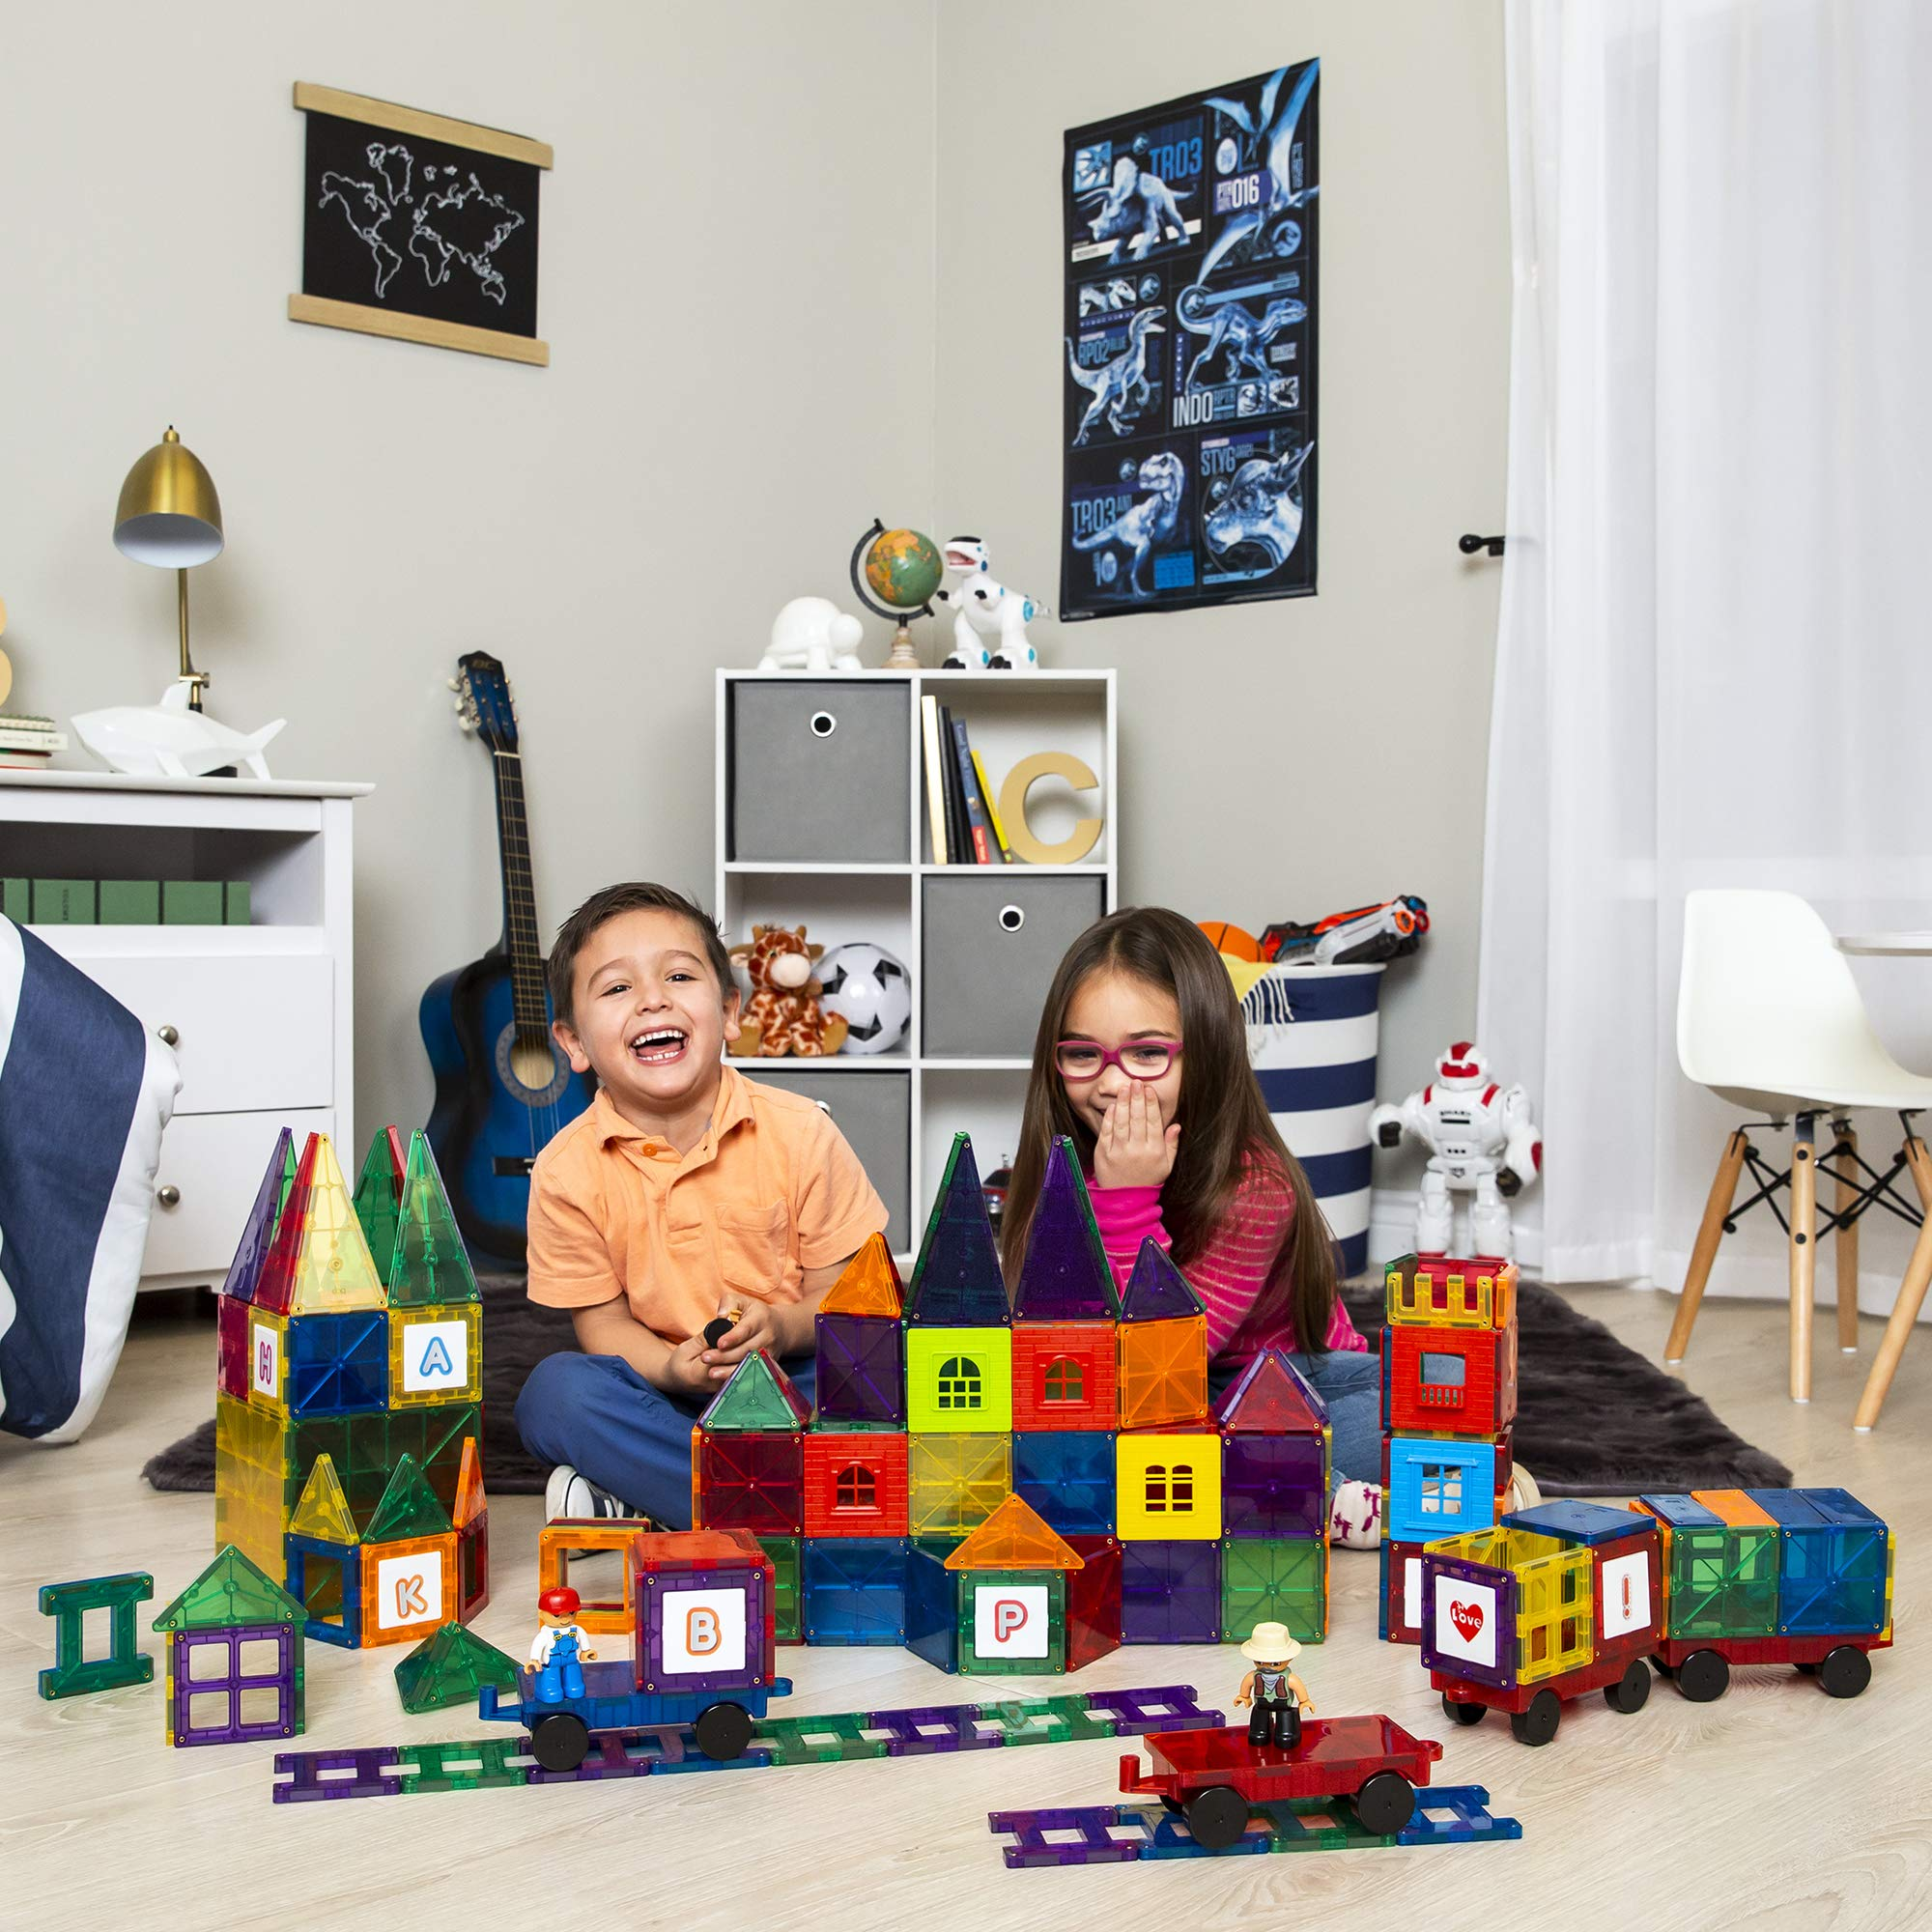 Best Choice Products 250-Piece Kids Educational STEM Rainbow Geometric 3D Magnetic Building Block Tile Toy Play Set w/ Railroad Tracks, 4 Action Figures, 4 Mini Train Carts, ABC Stickers by Best Choice Products (Image #2)